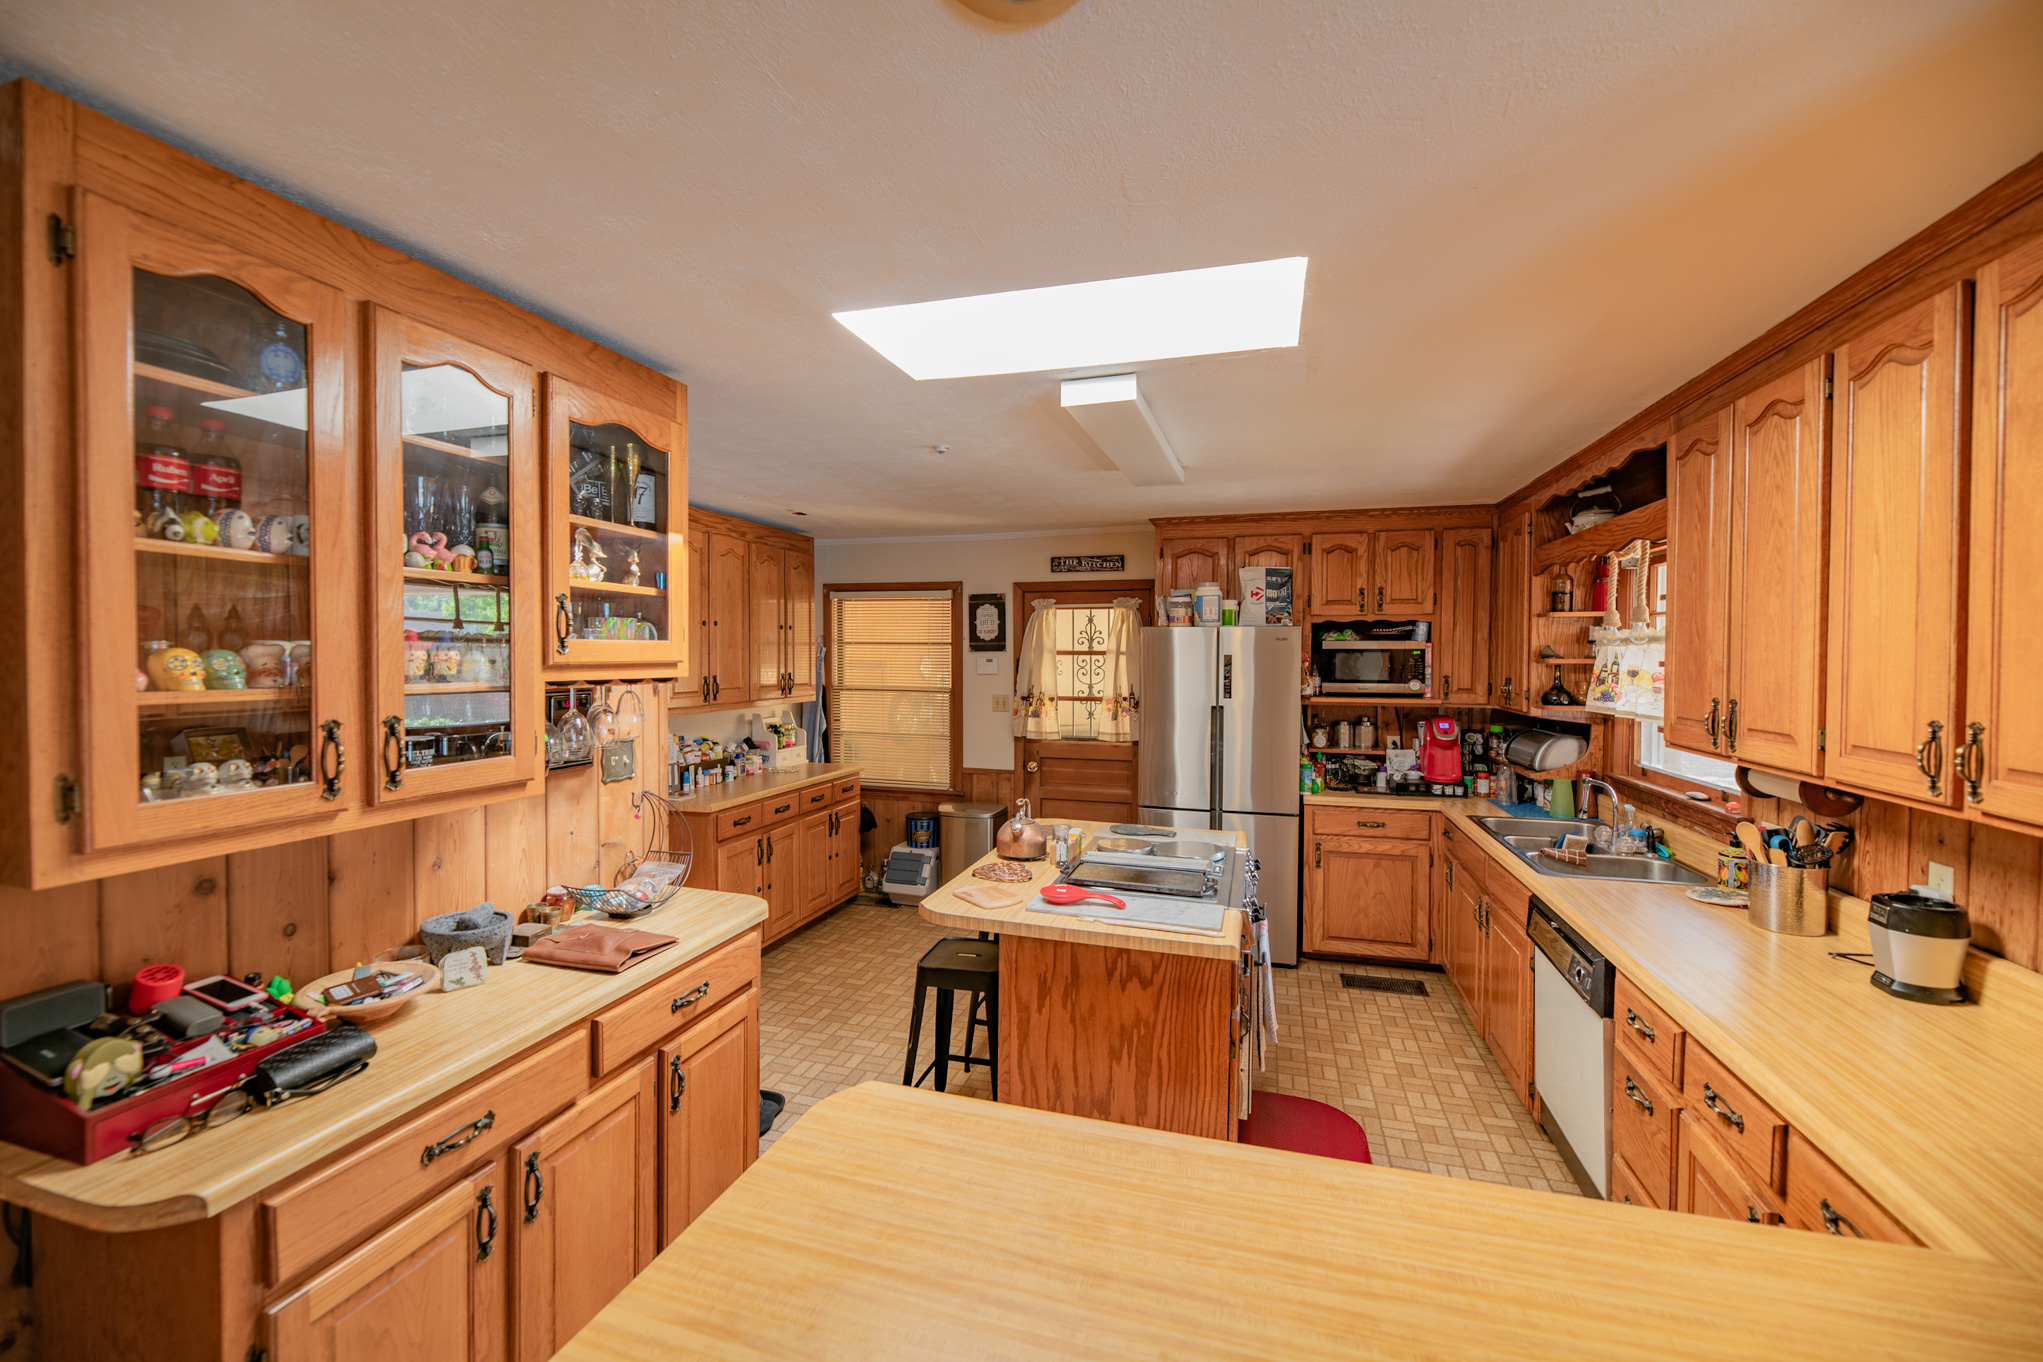 3-rivers-realty,3rr,911-morningside-drive,bainbridge-real-estate,bainbridggarealestate,mills-brock,three-rivers-realty,kitchen.jpg